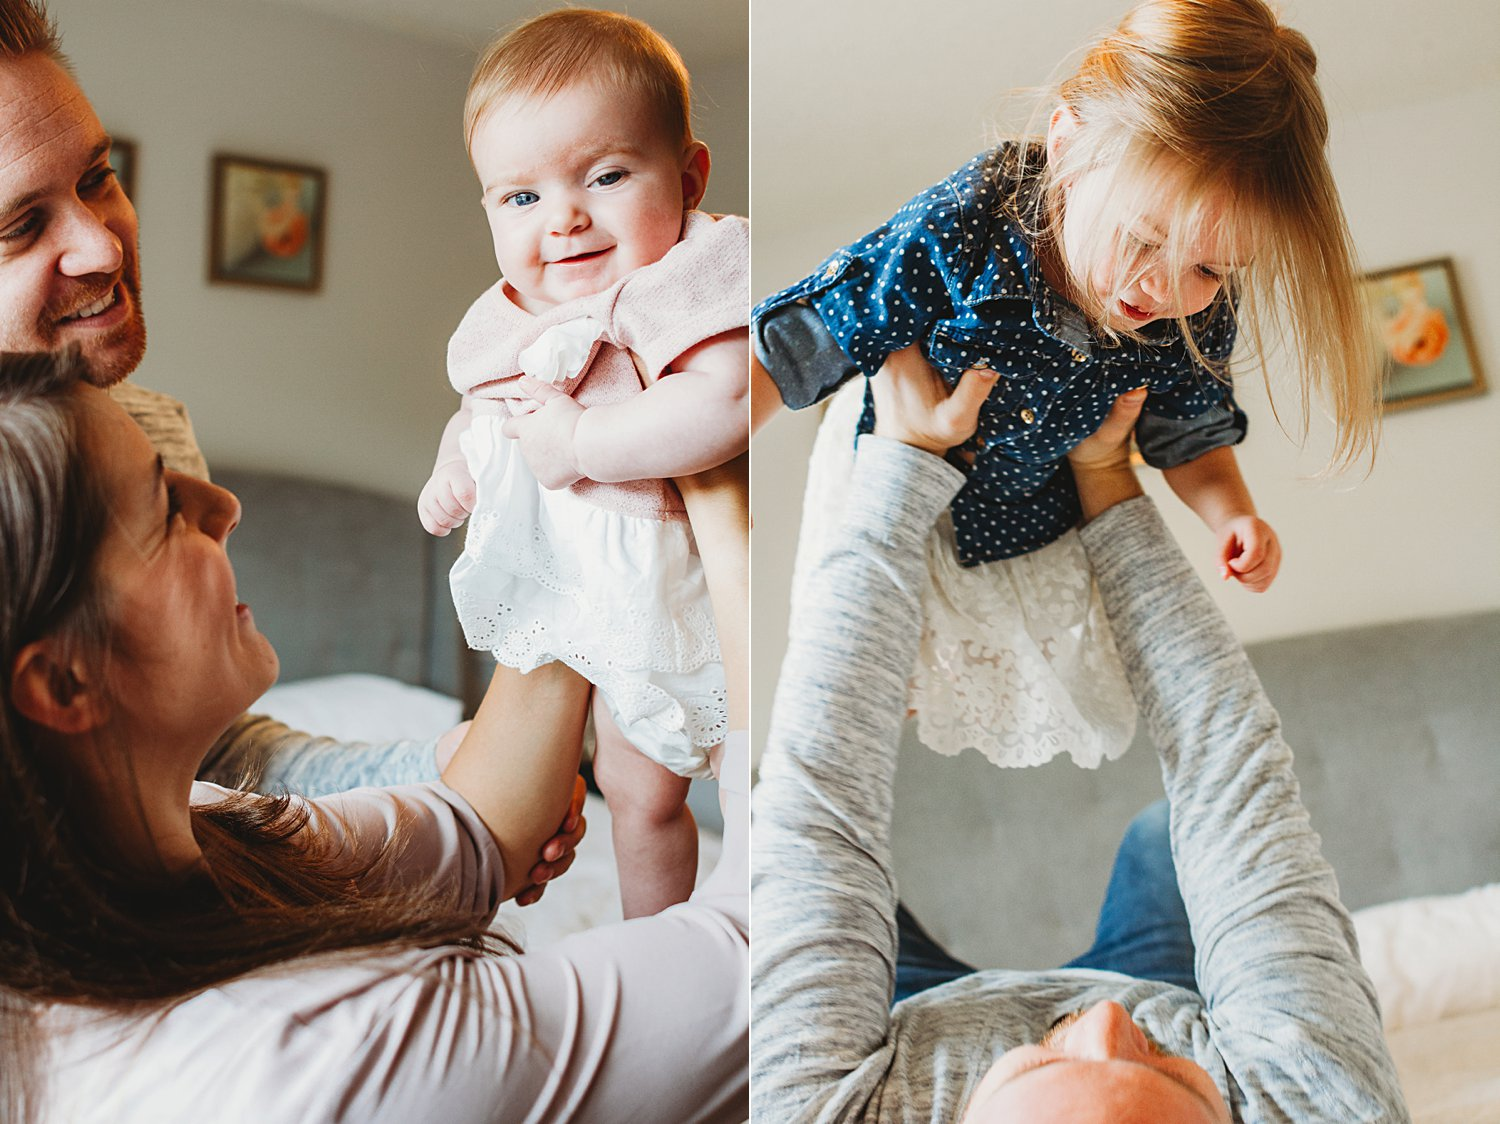 Lifestyle photos of parents playing with young children